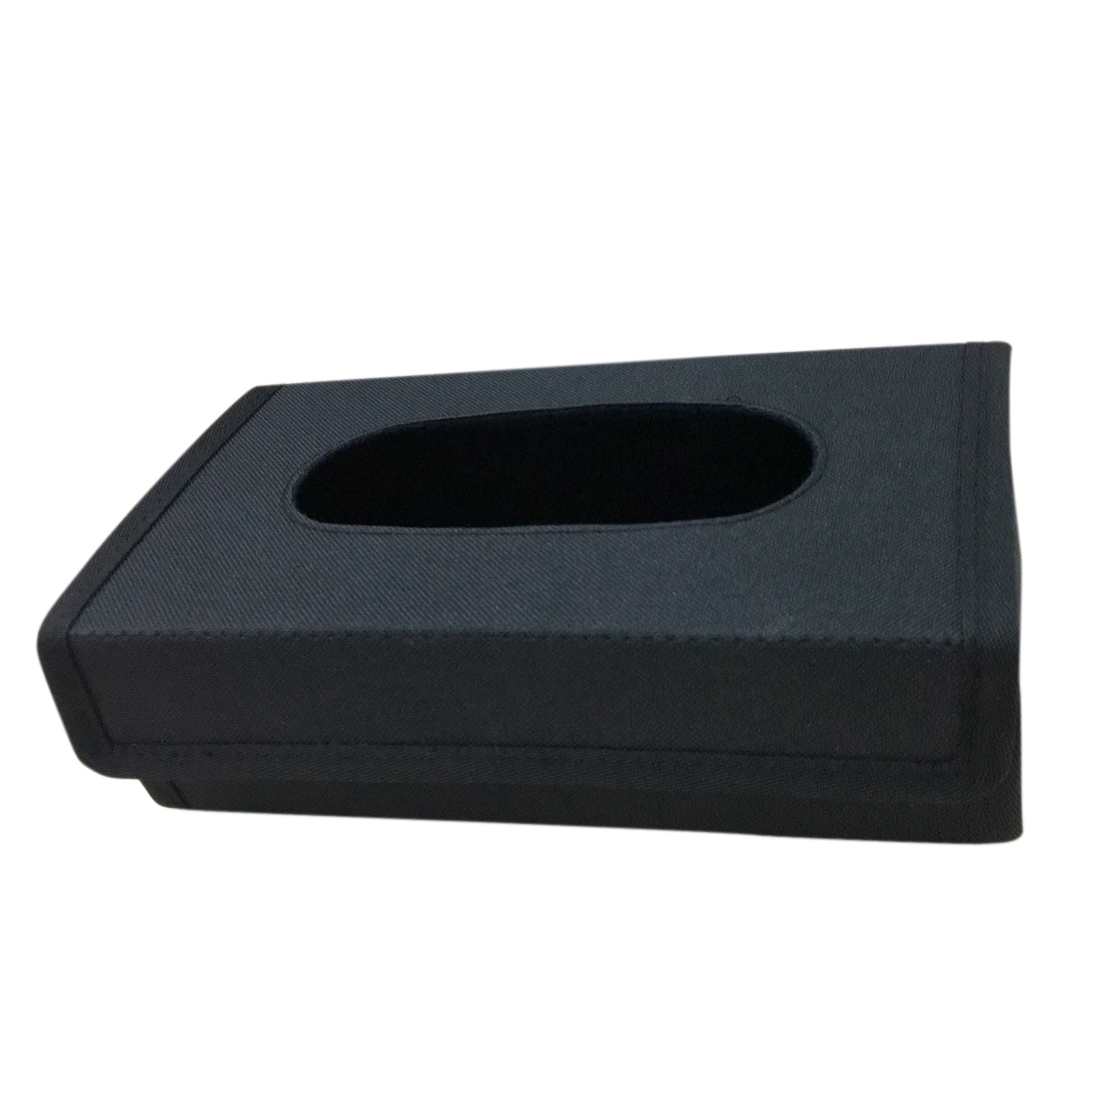 Black foldable tissue box with universal design